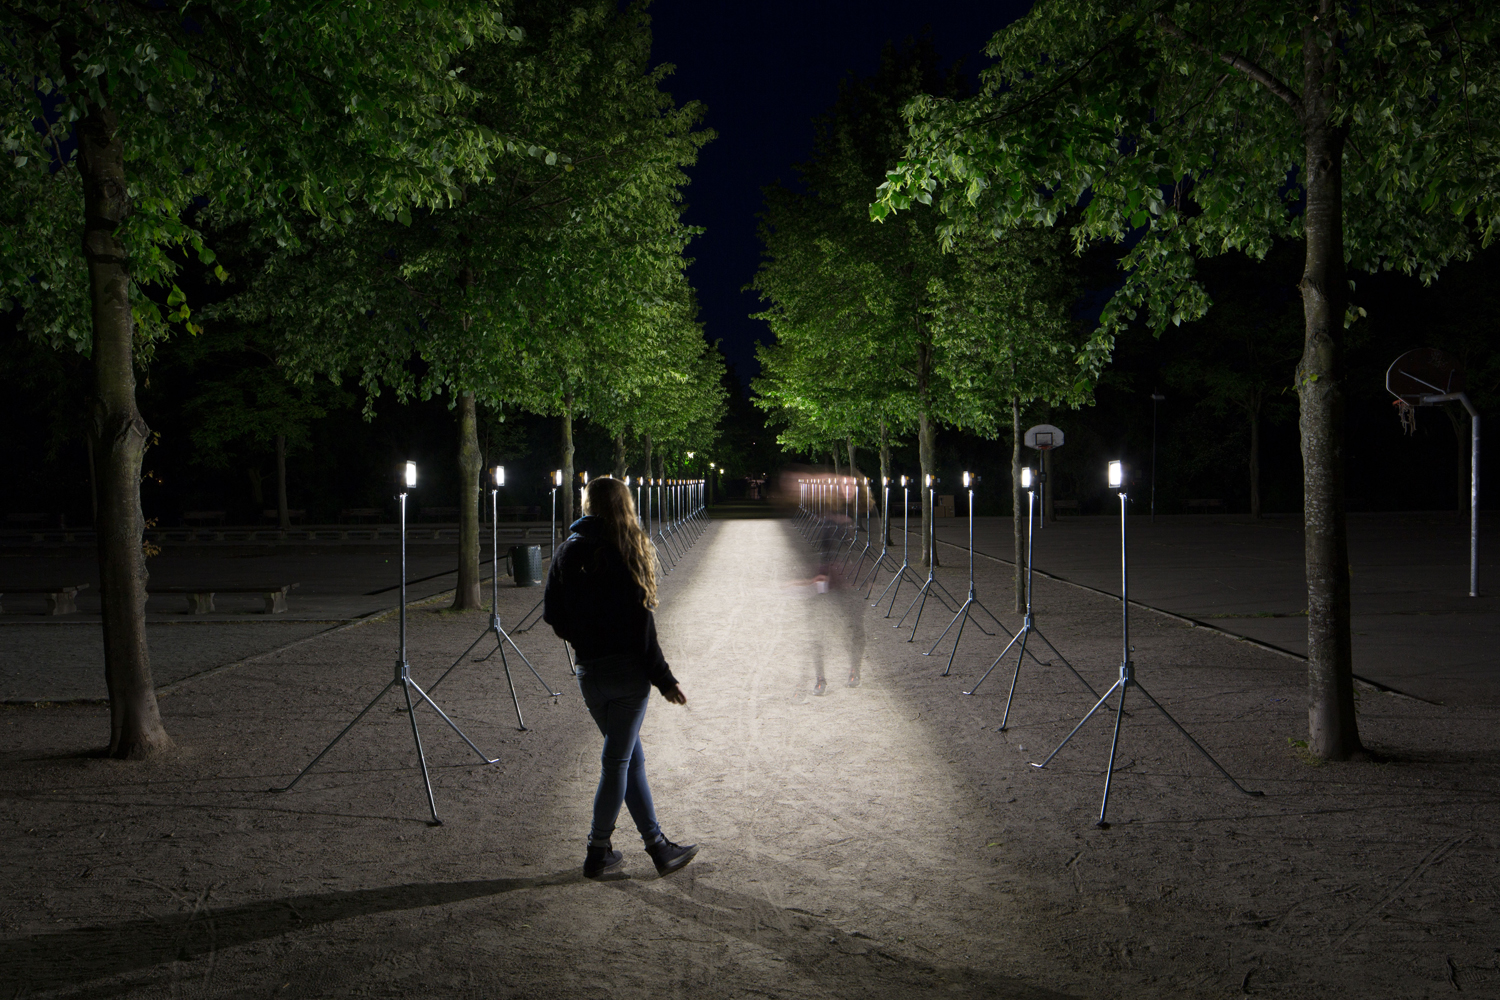 2016 Lucid Projections (For Enghaveparken), Jakob Oredsson